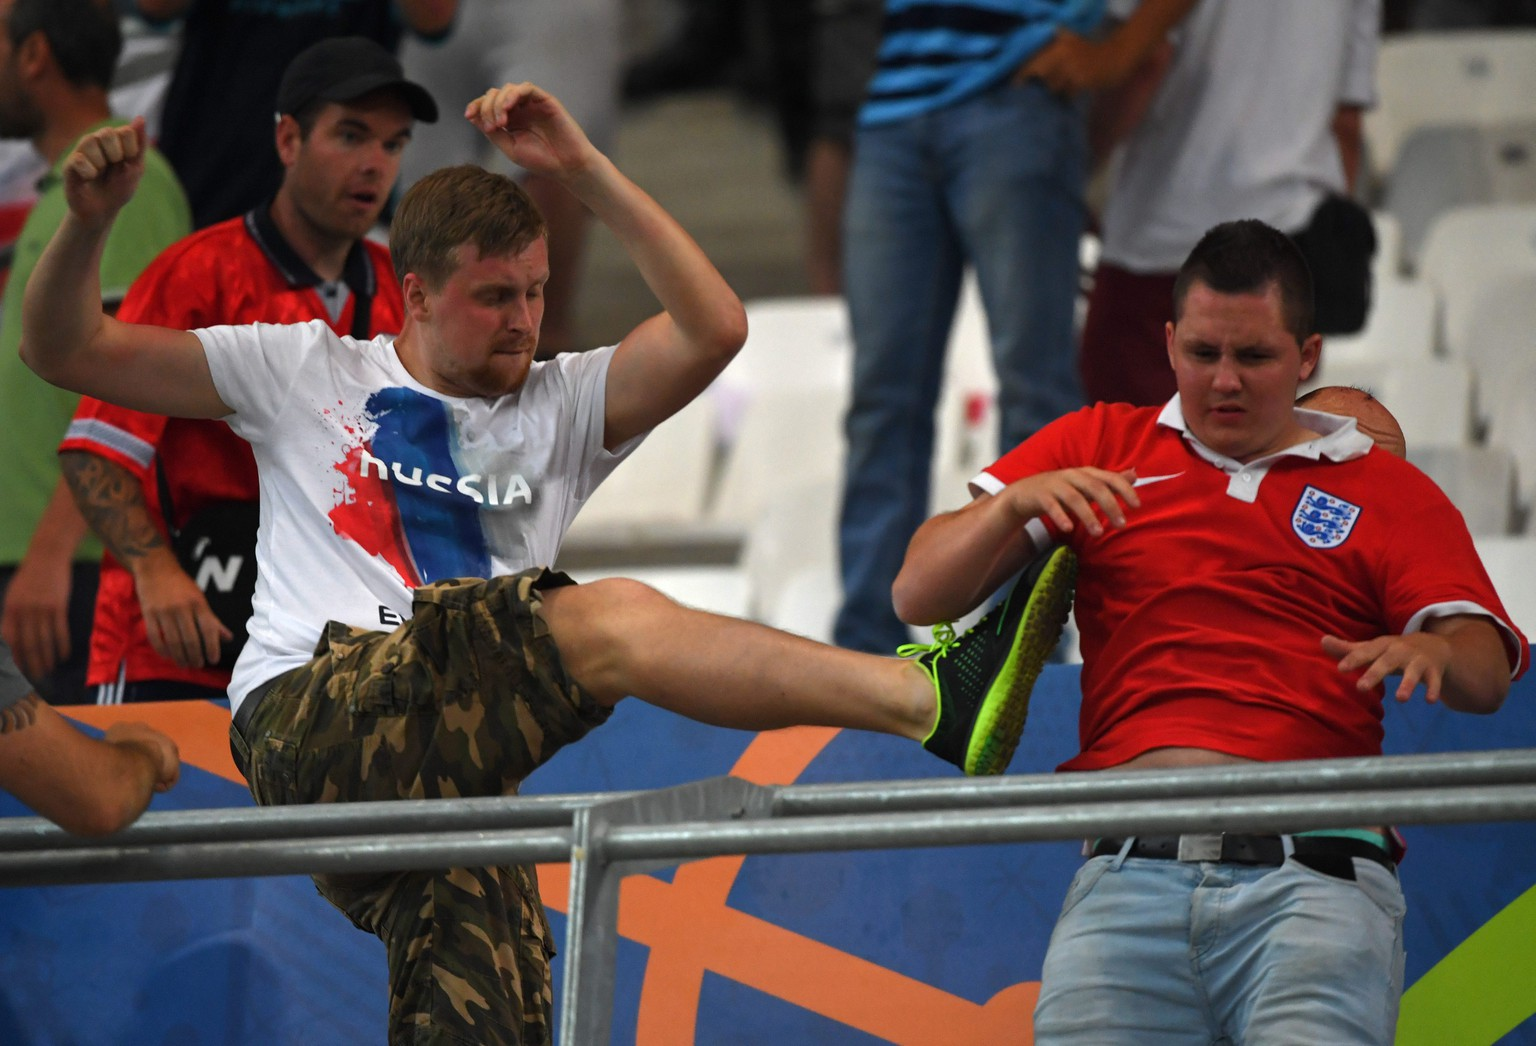 epa05358396 Russia supporters (L) clash with England supporters (R) in the stands during the UEFA EURO 2016 group B preliminary round match between England and Russia at Stade Velodrome in Marseille, France, 11 June 2016.